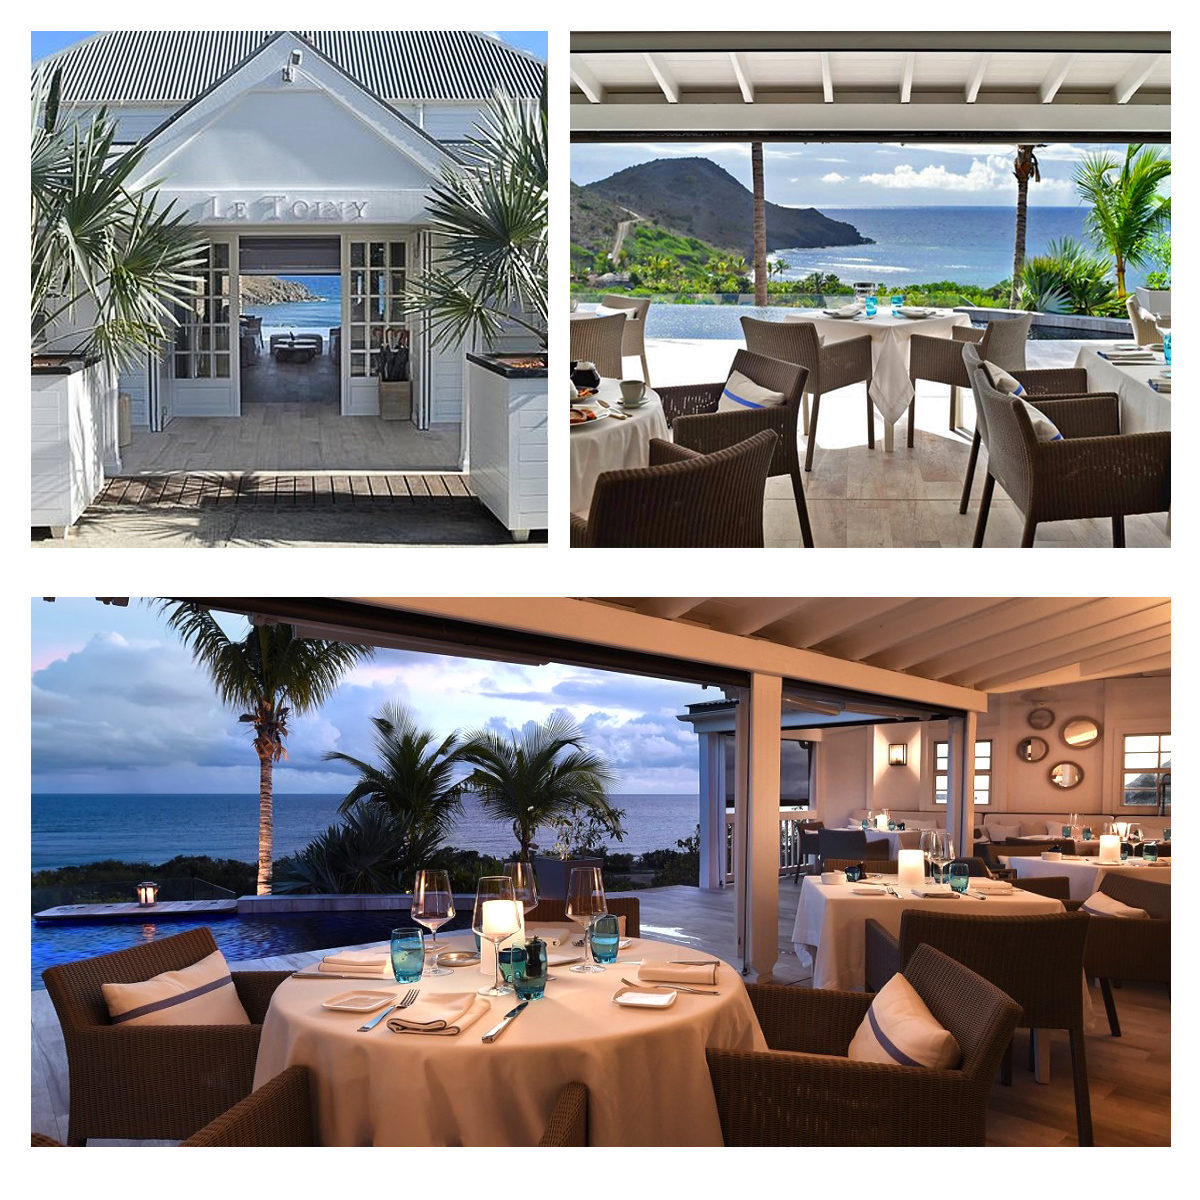 Relais & Chateaux Hotel Le Toiny, St Barth